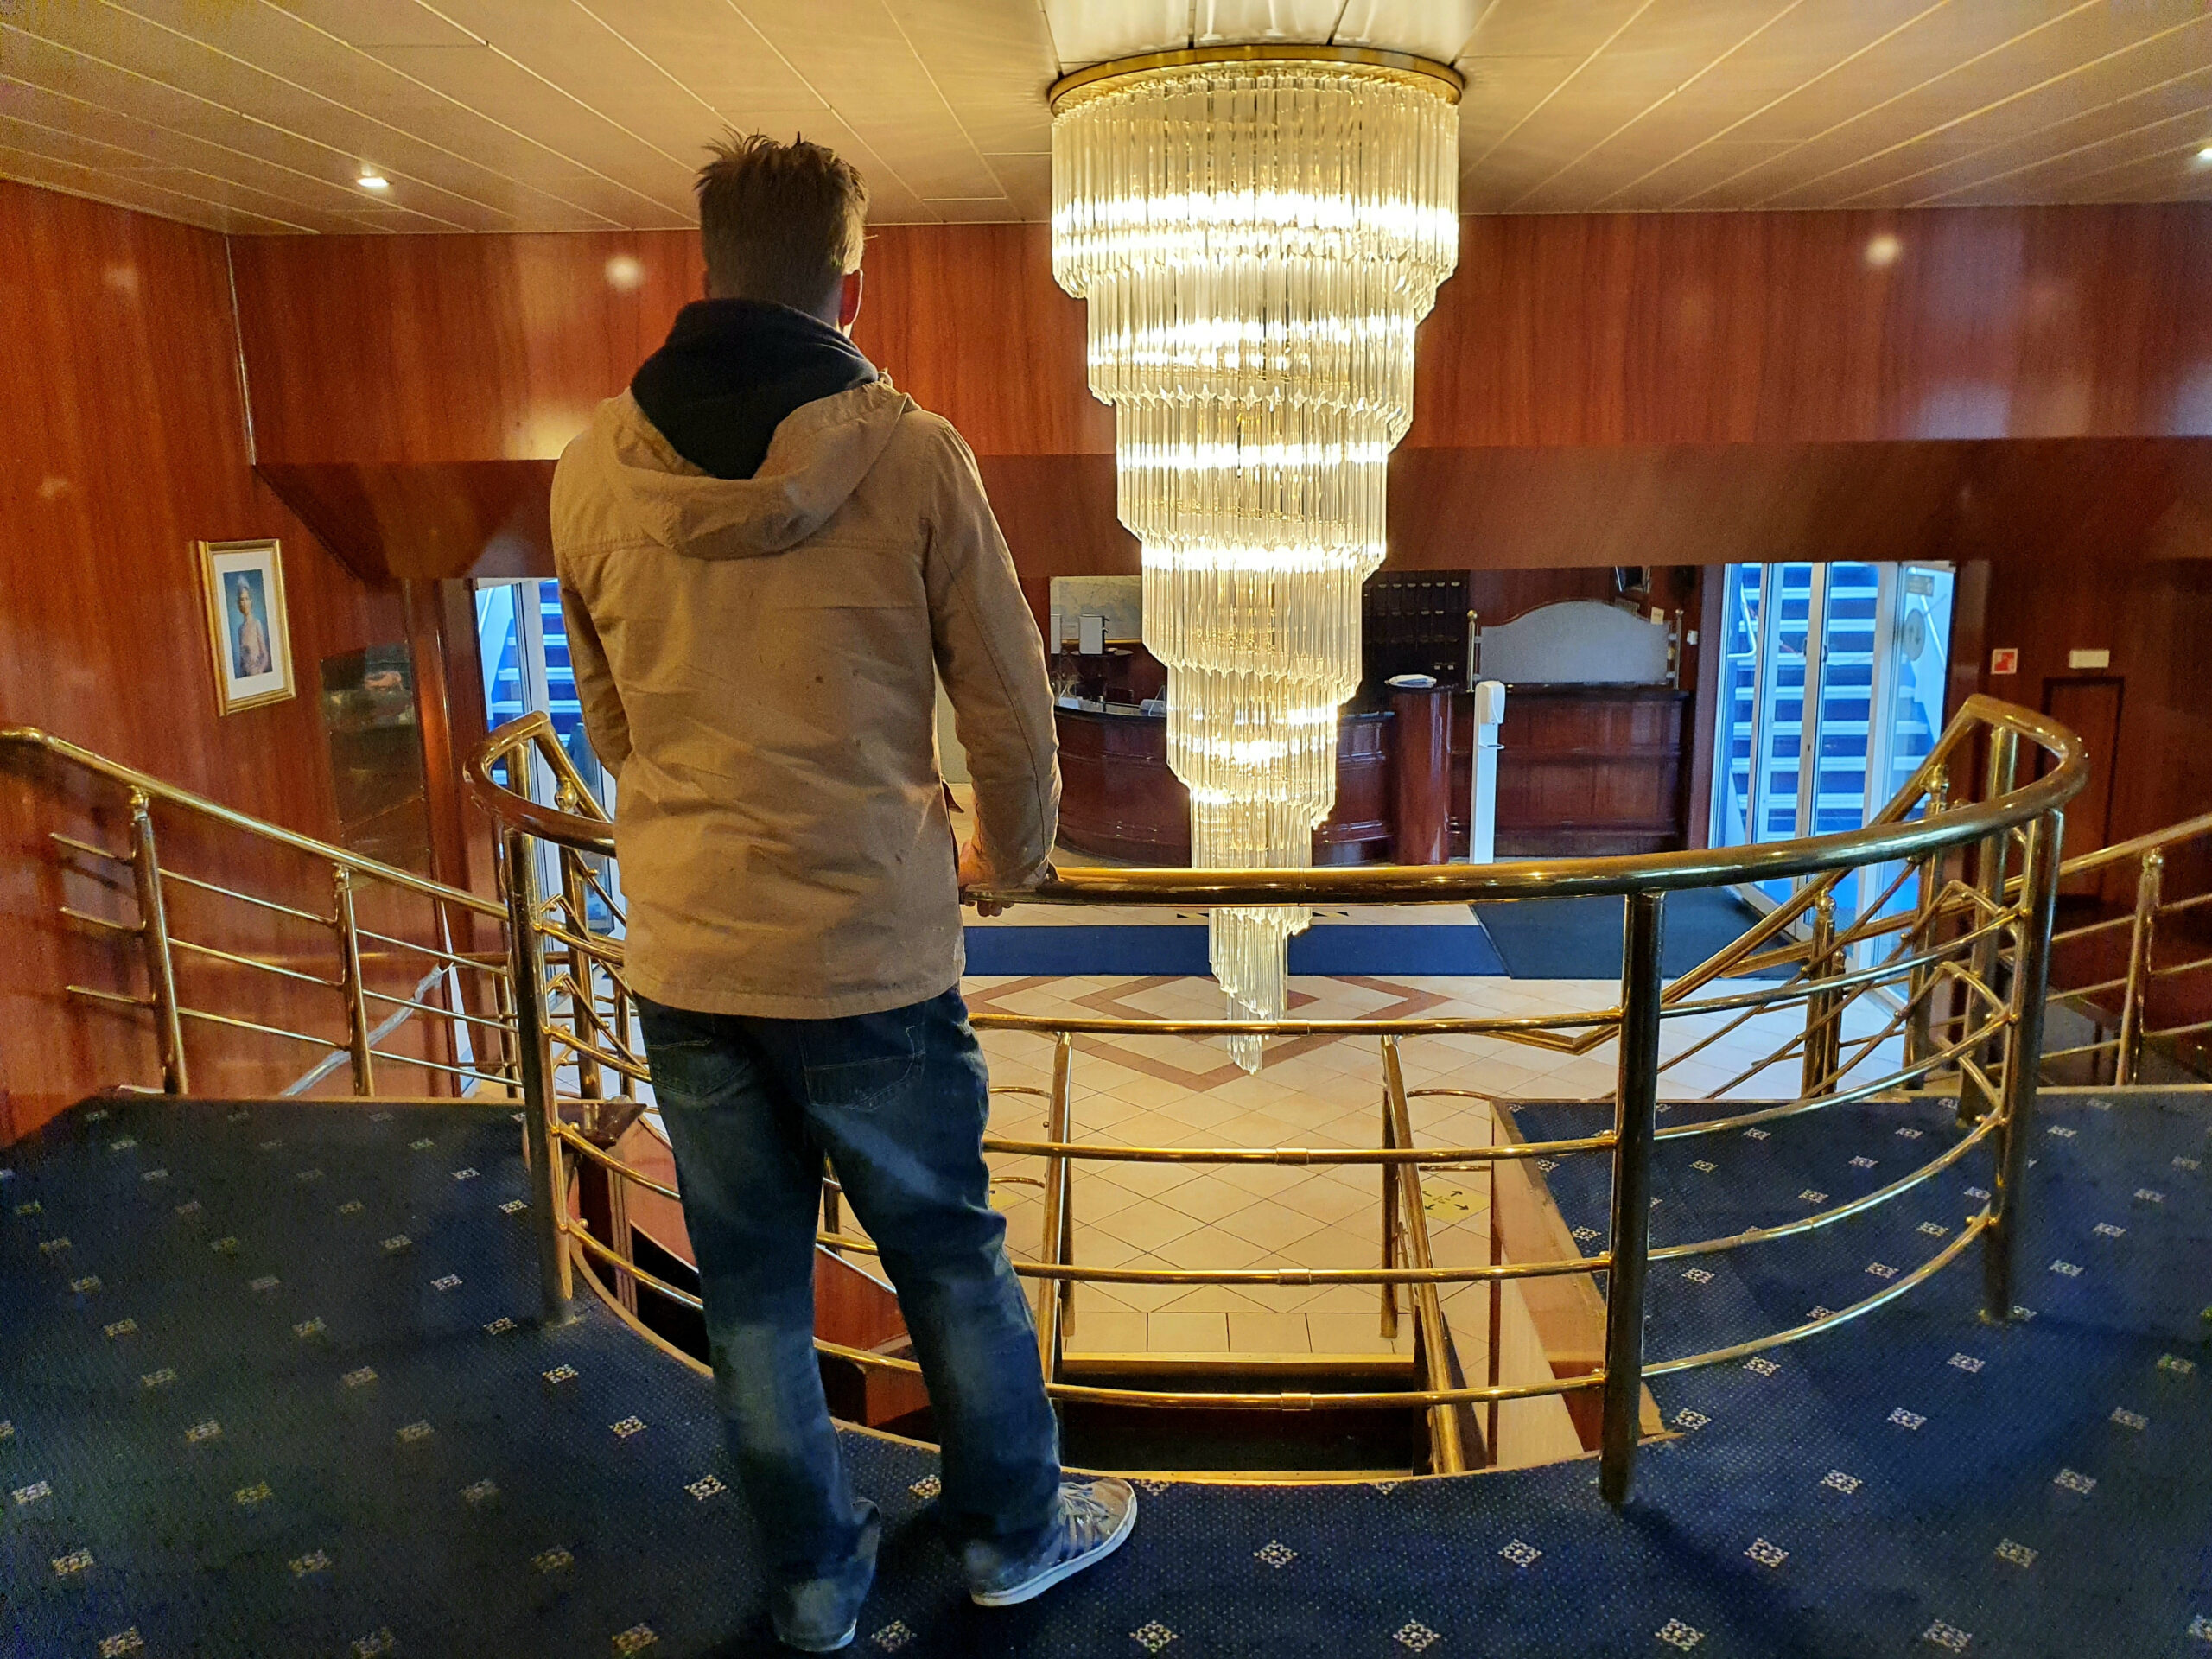 Cruiseschip wordt reddingsboot